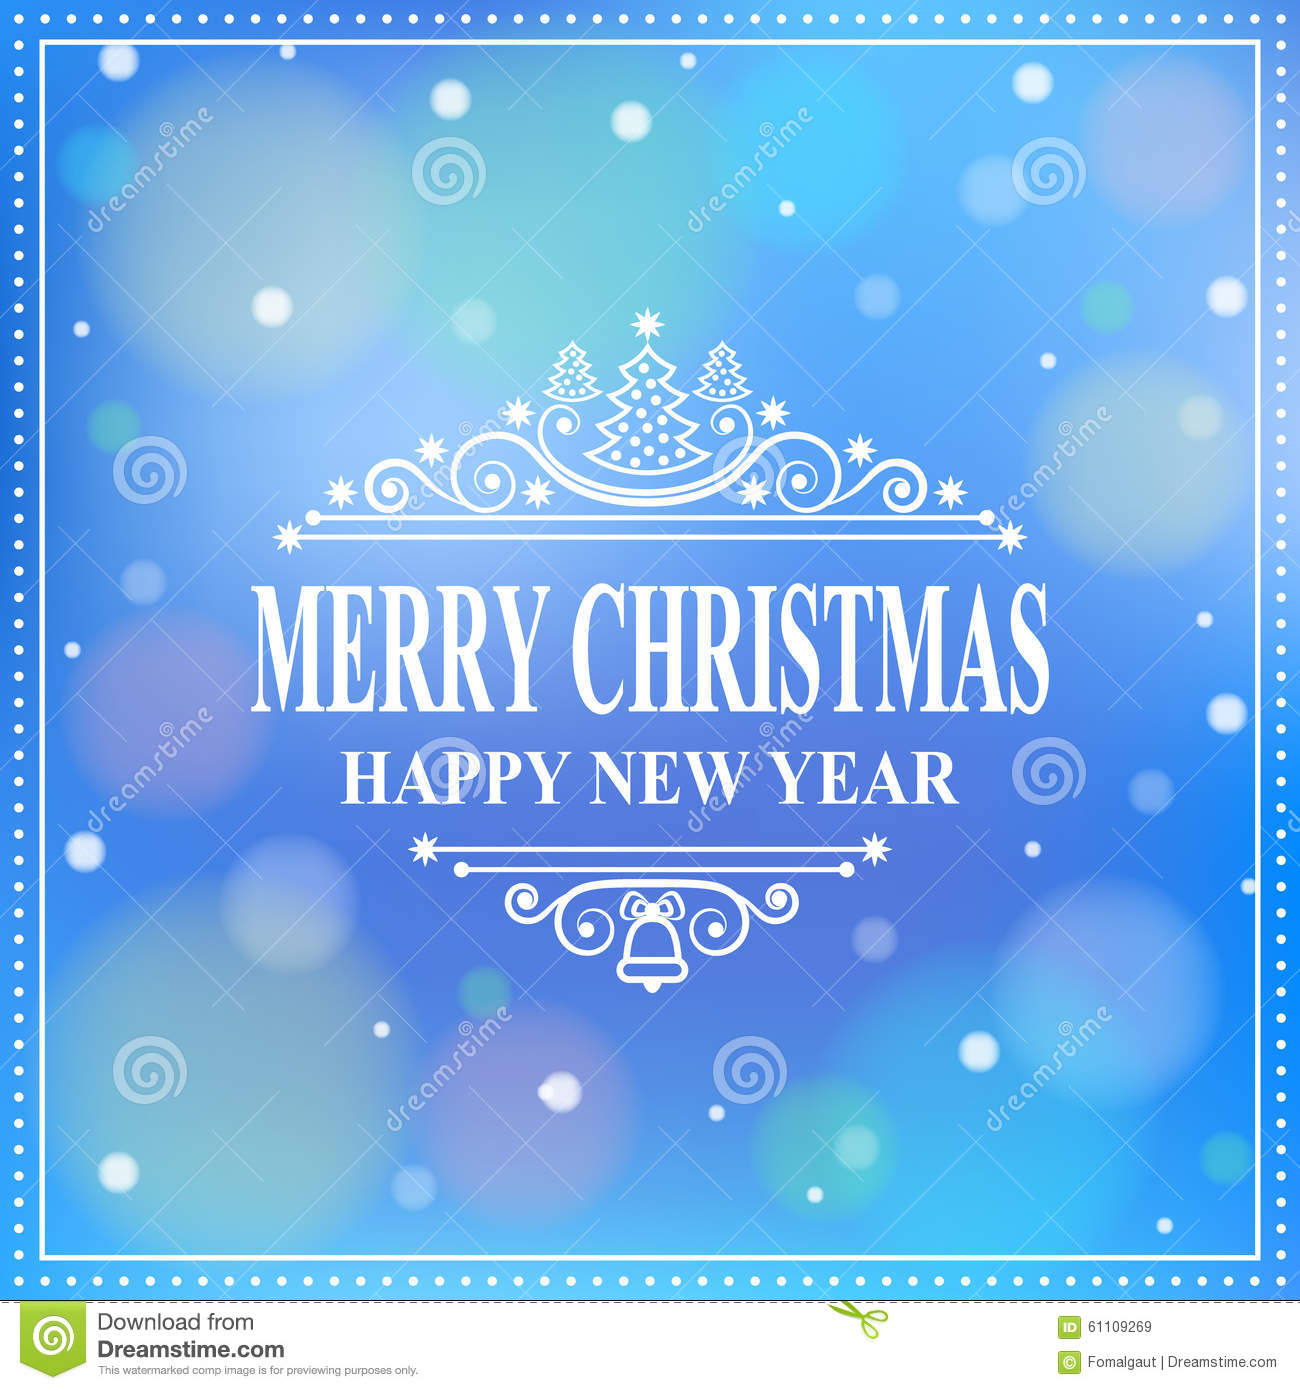 Happy new year message merry christmas holidays wish greeting card happy new year message merry christmas holidays wish greeting card invitation brochure flyer design and vintage ornament deco kristyandbryce Gallery